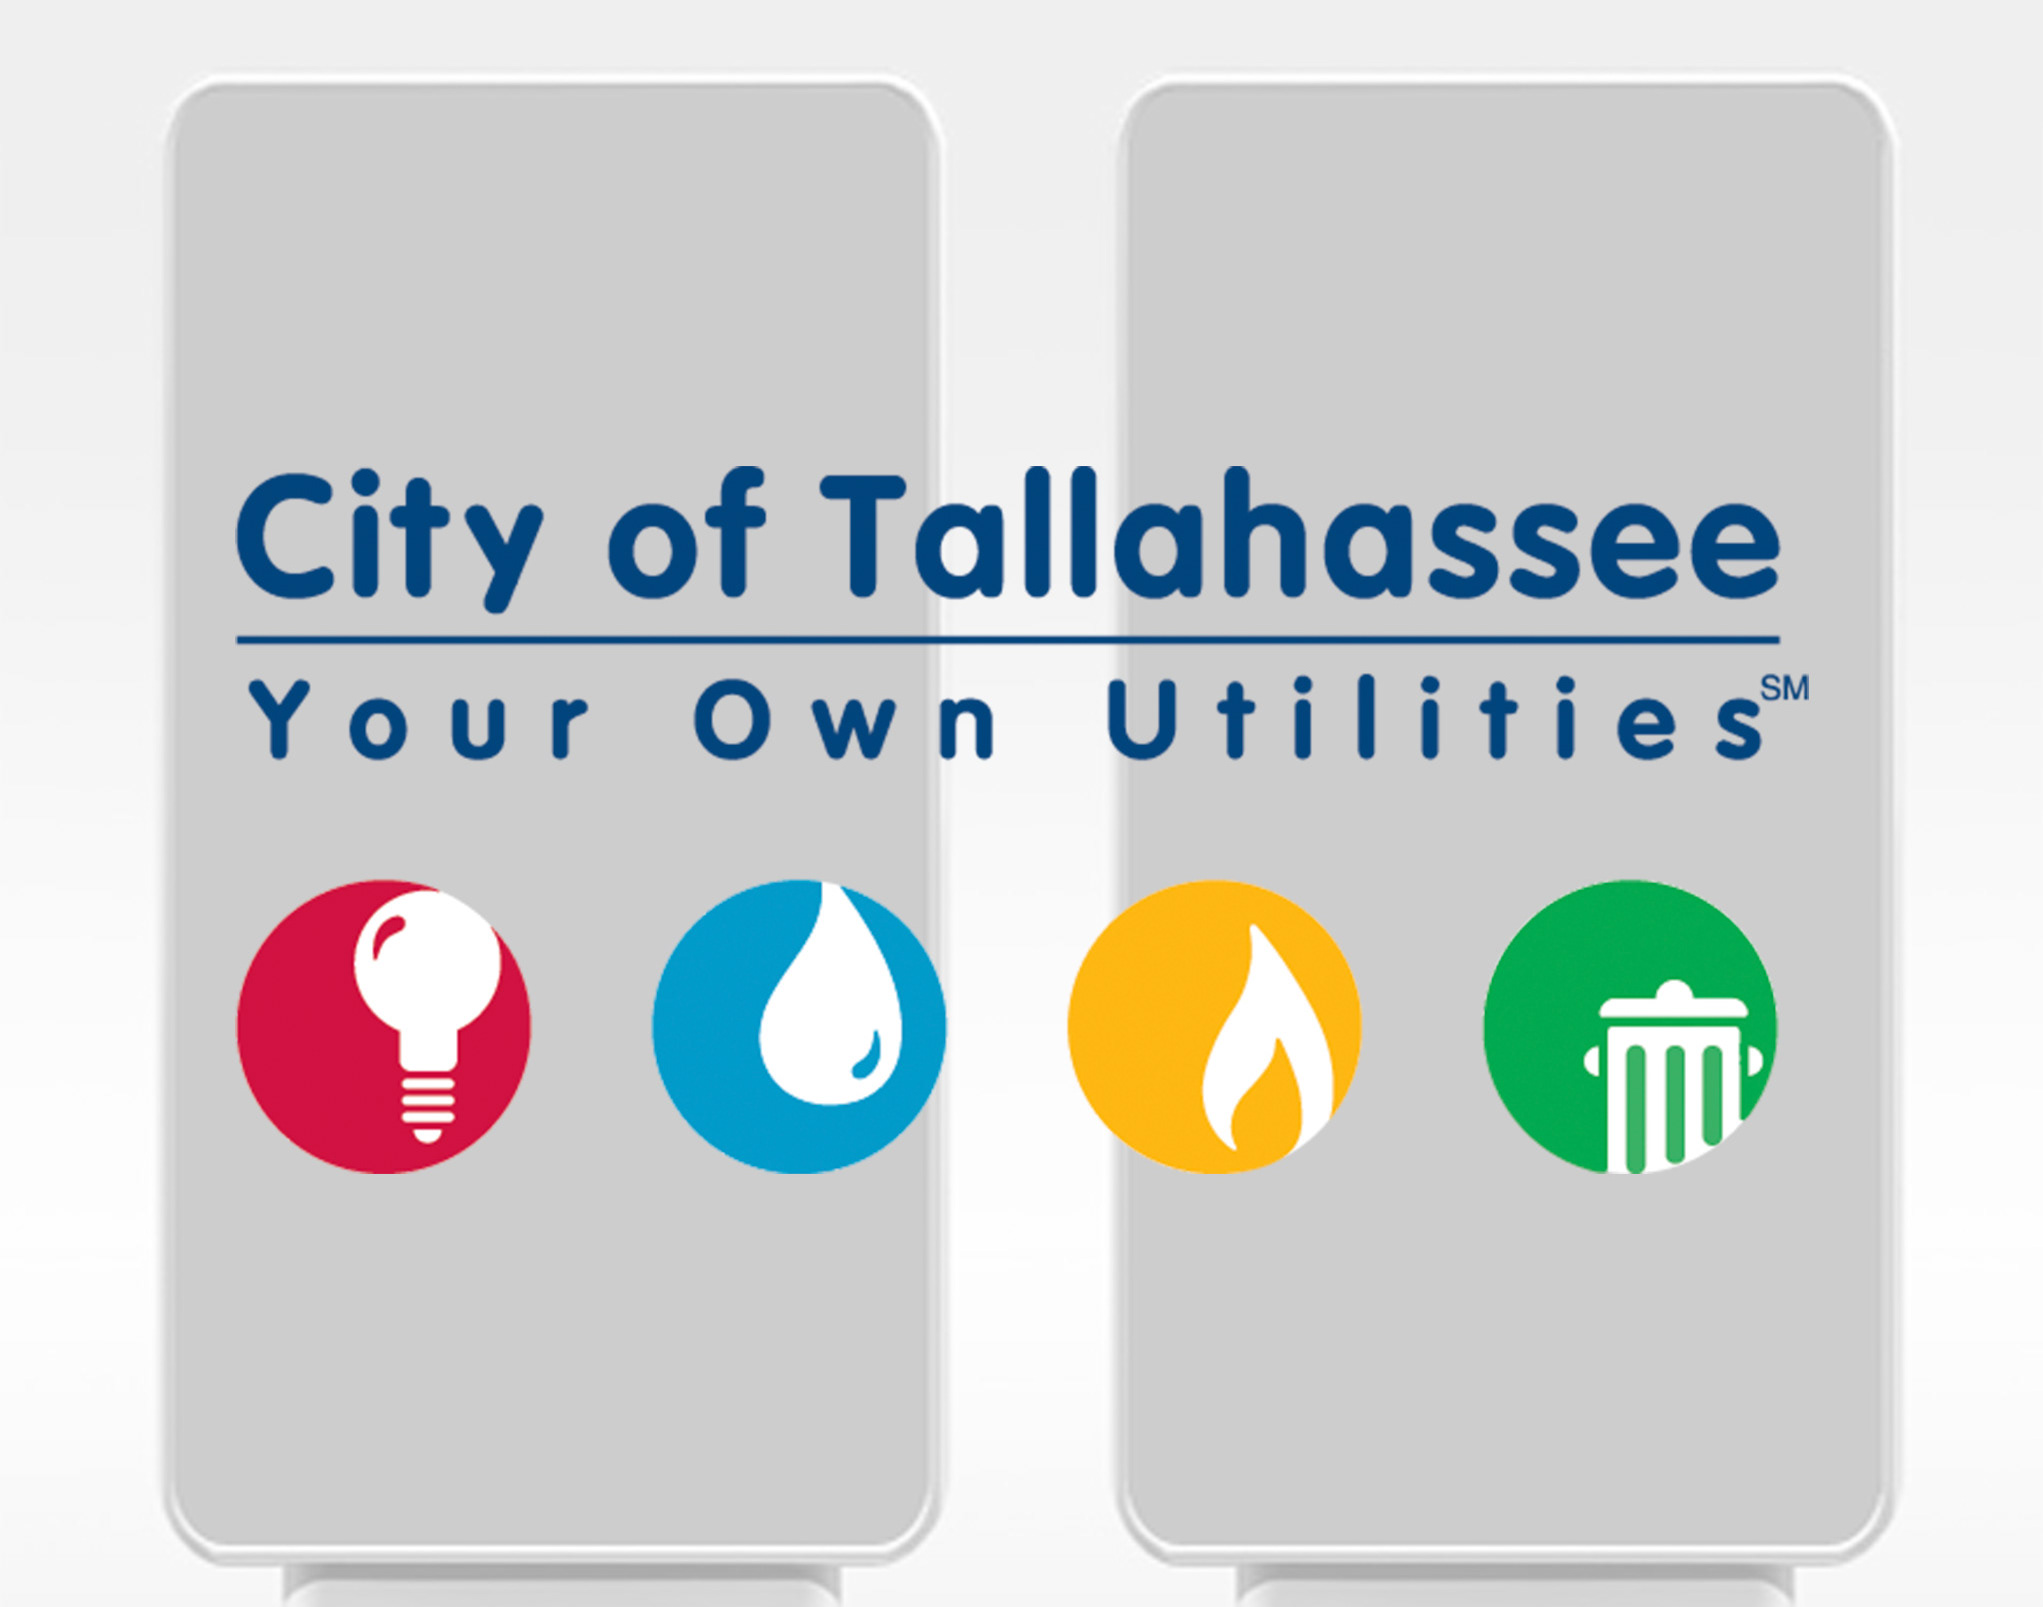 City Of Tallahassee Utility Wisheka Williams